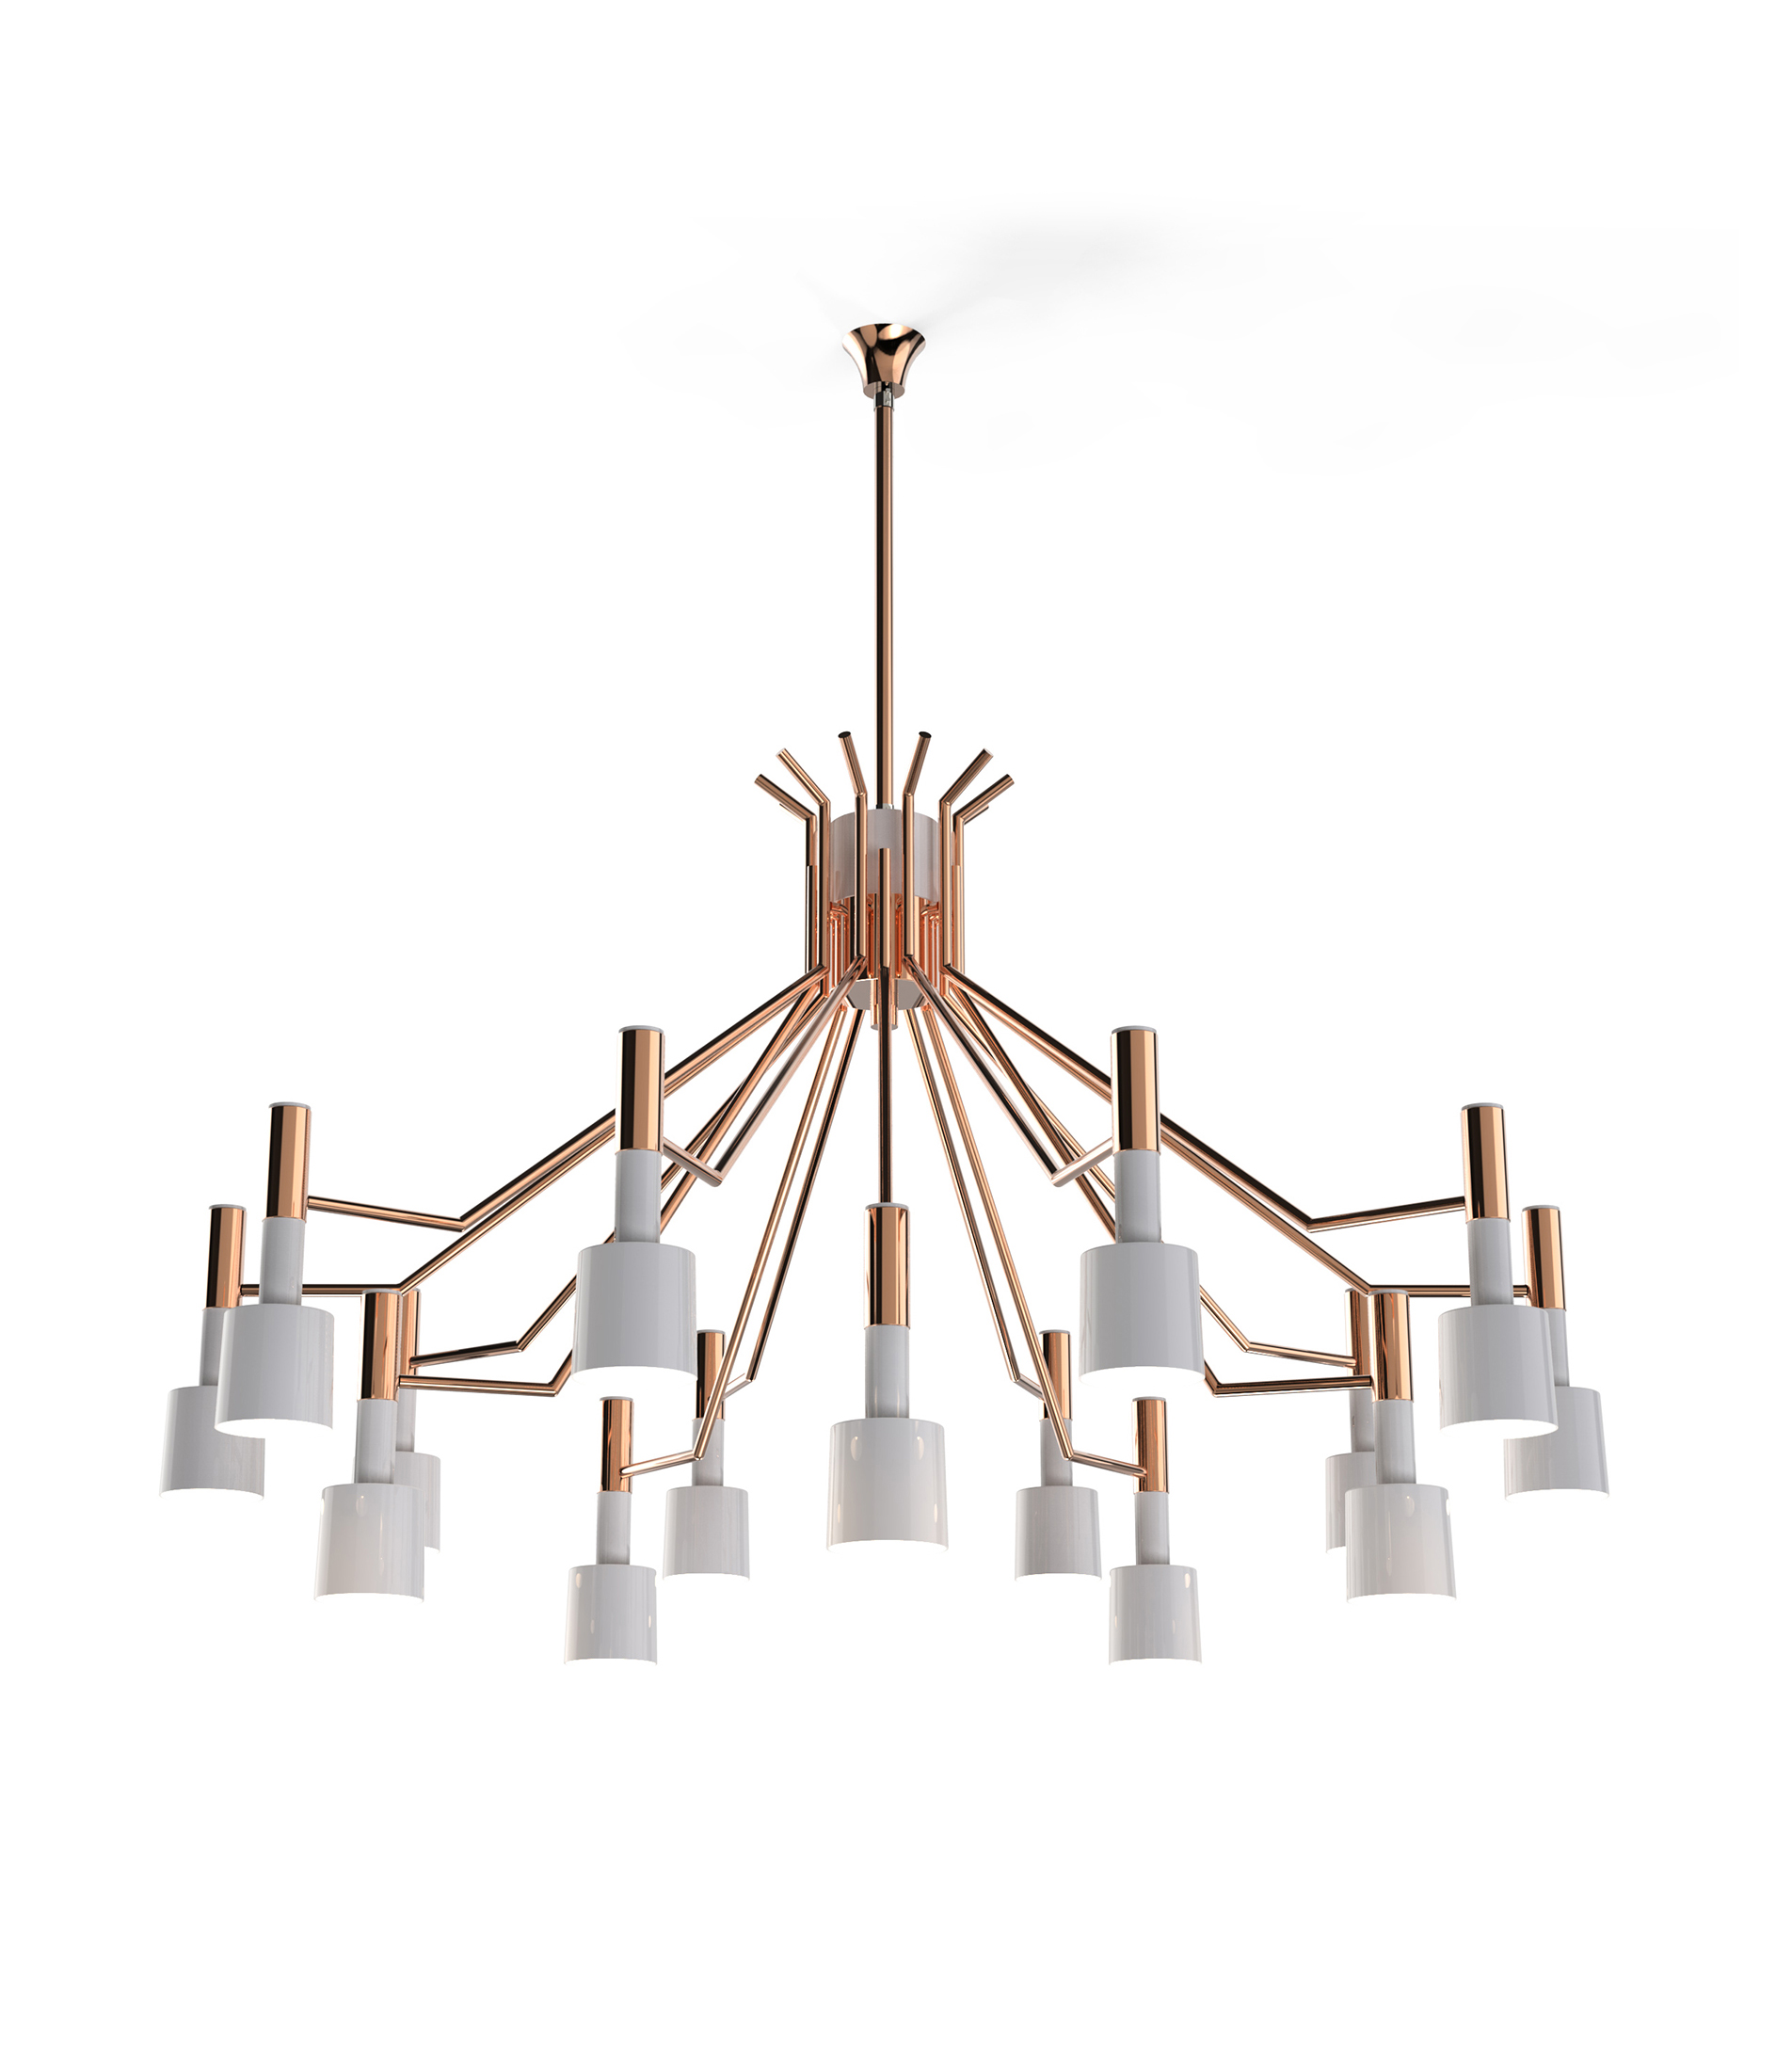 Trending Product An Iconic Round Chandelier with a Mid-Century Design 2 round chandelier Trending Product: An Iconic Round Chandelier with a Mid-Century Design Trending Product An Iconic Round Chandelier with a Mid Century Design 5